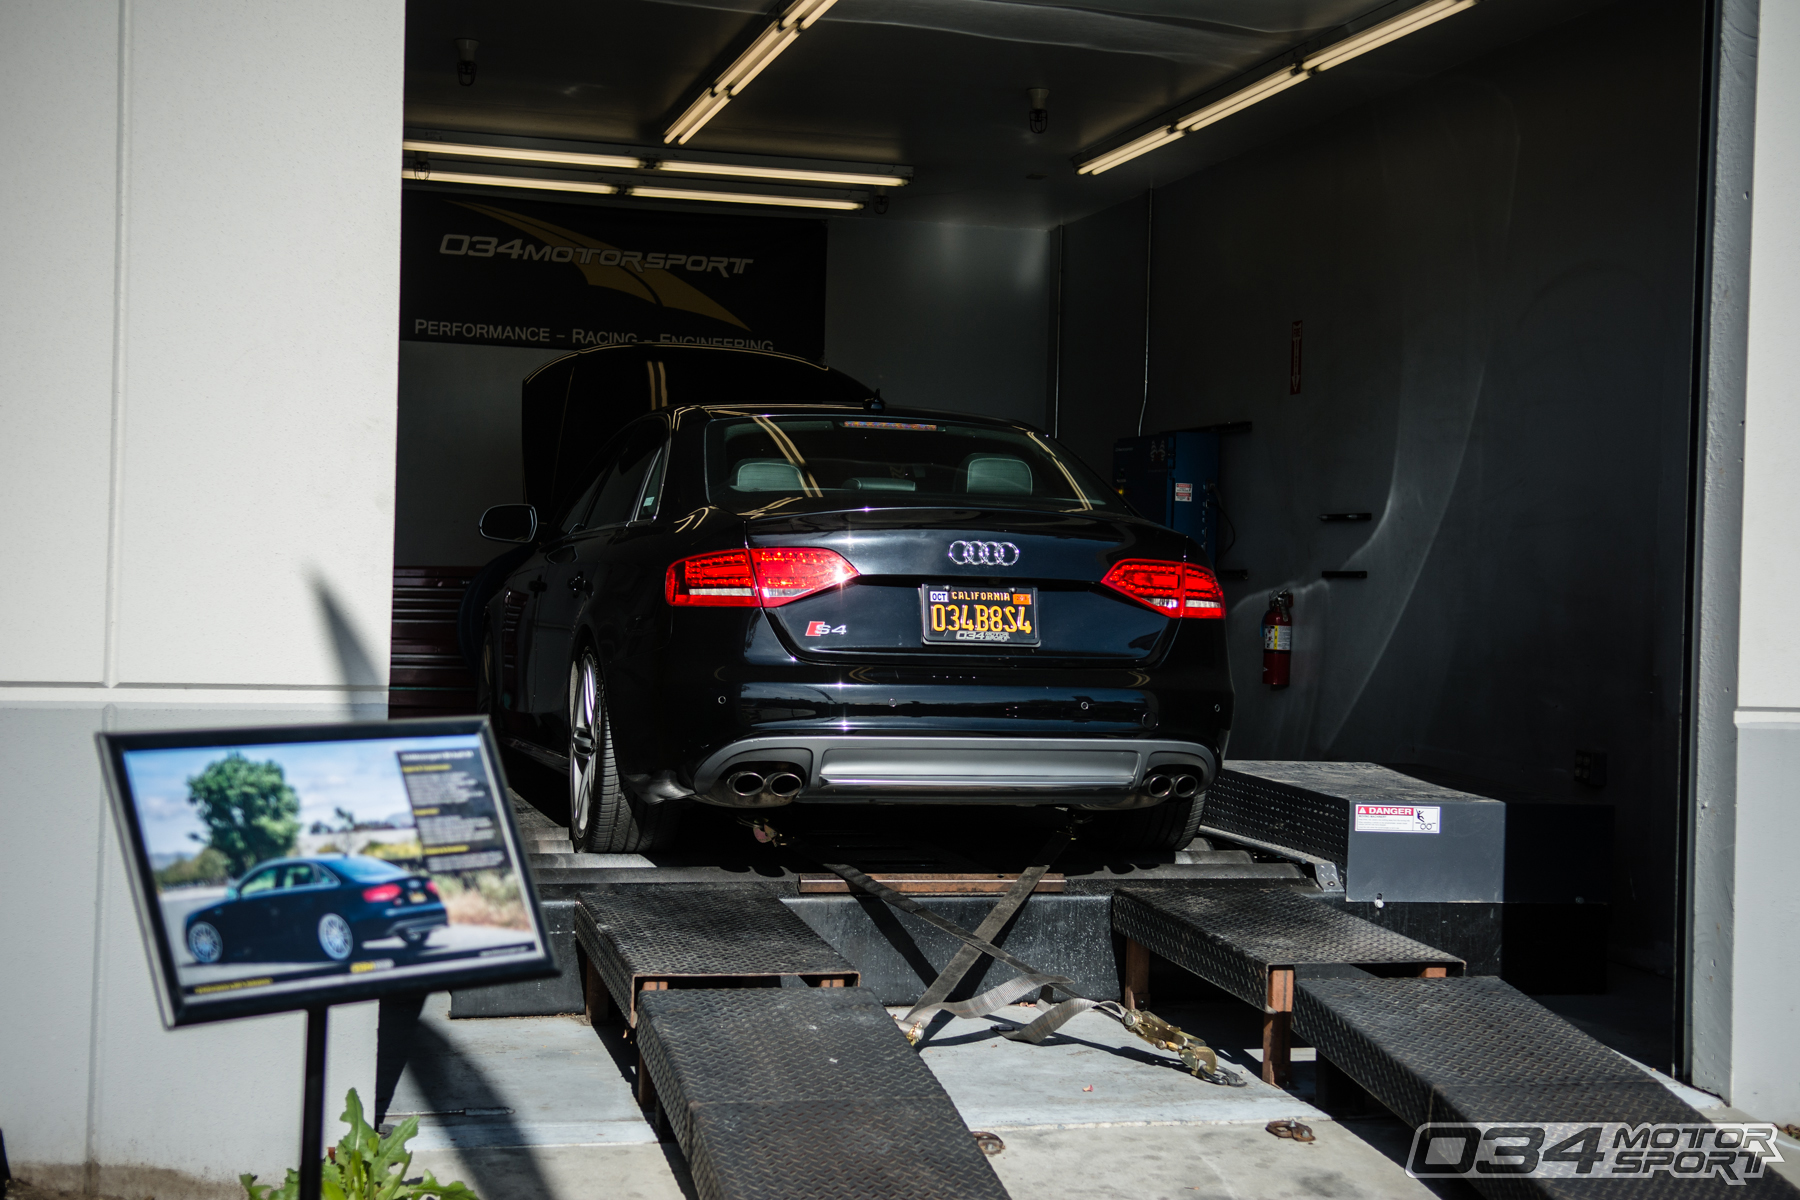 B8 Audi S4 Development Vehicle on Dyno at 034Motorsport WinterFest 2018 Open House